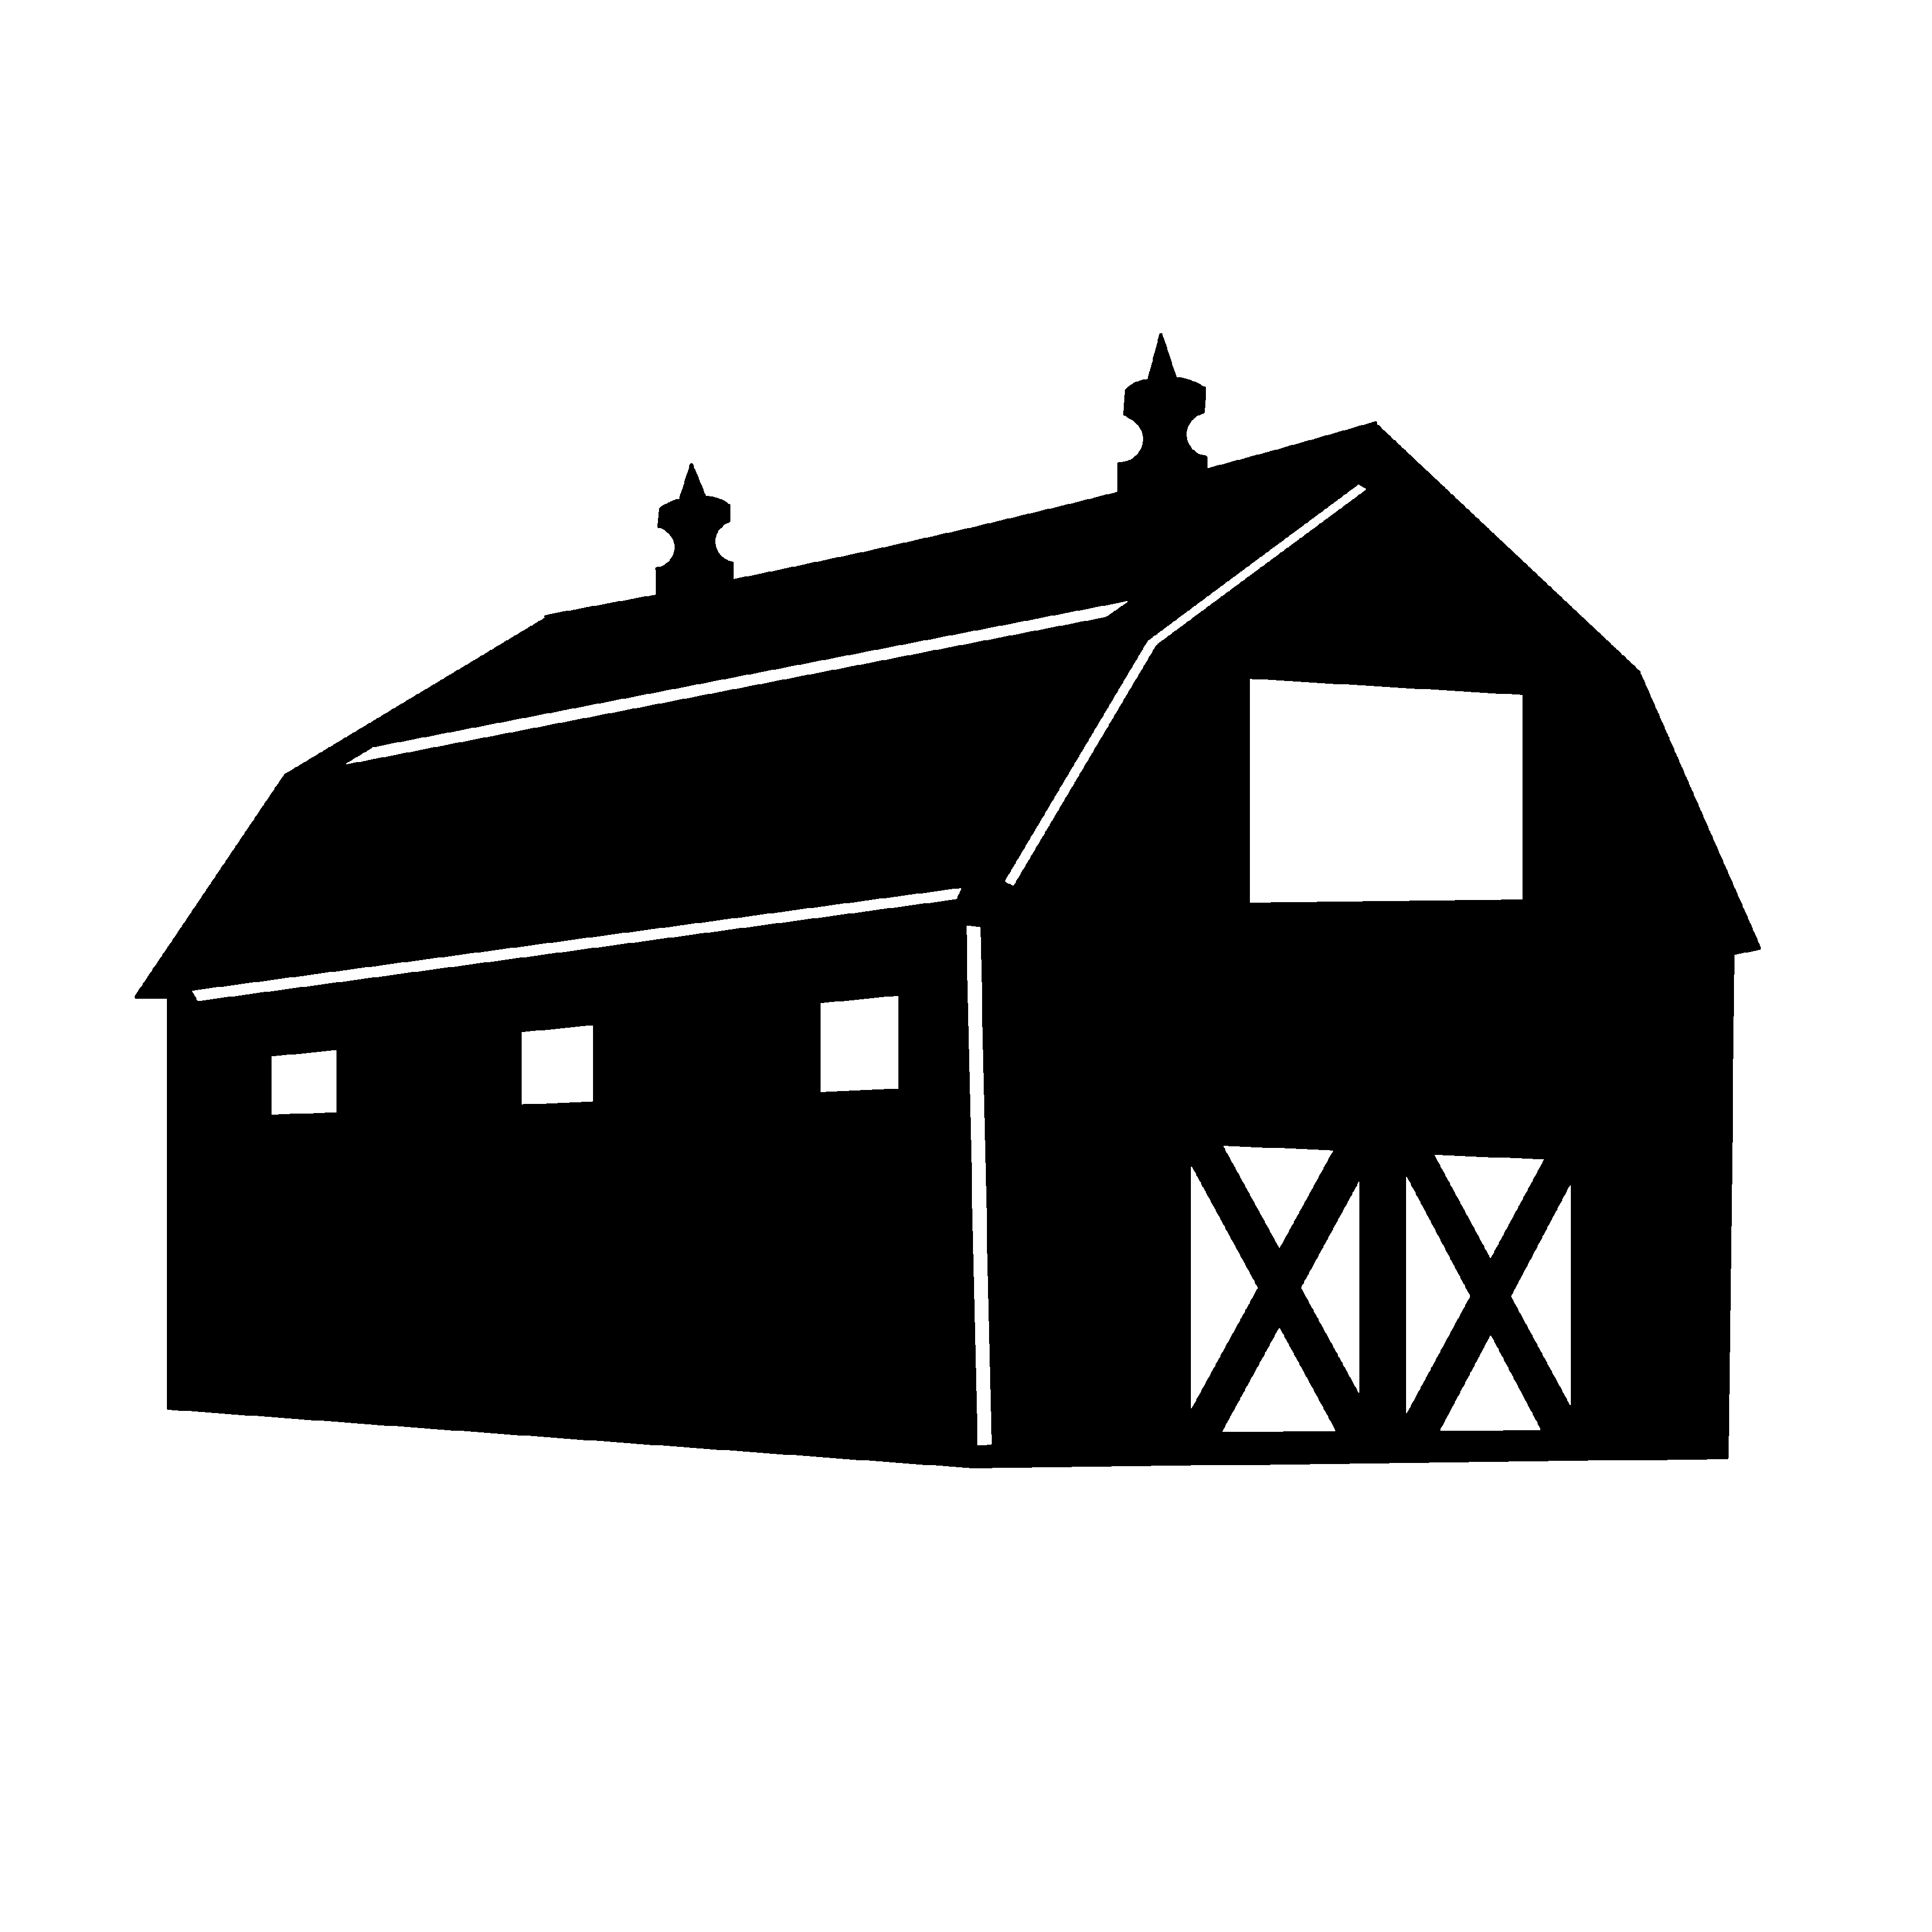 Barn clipart vector. Best free black and